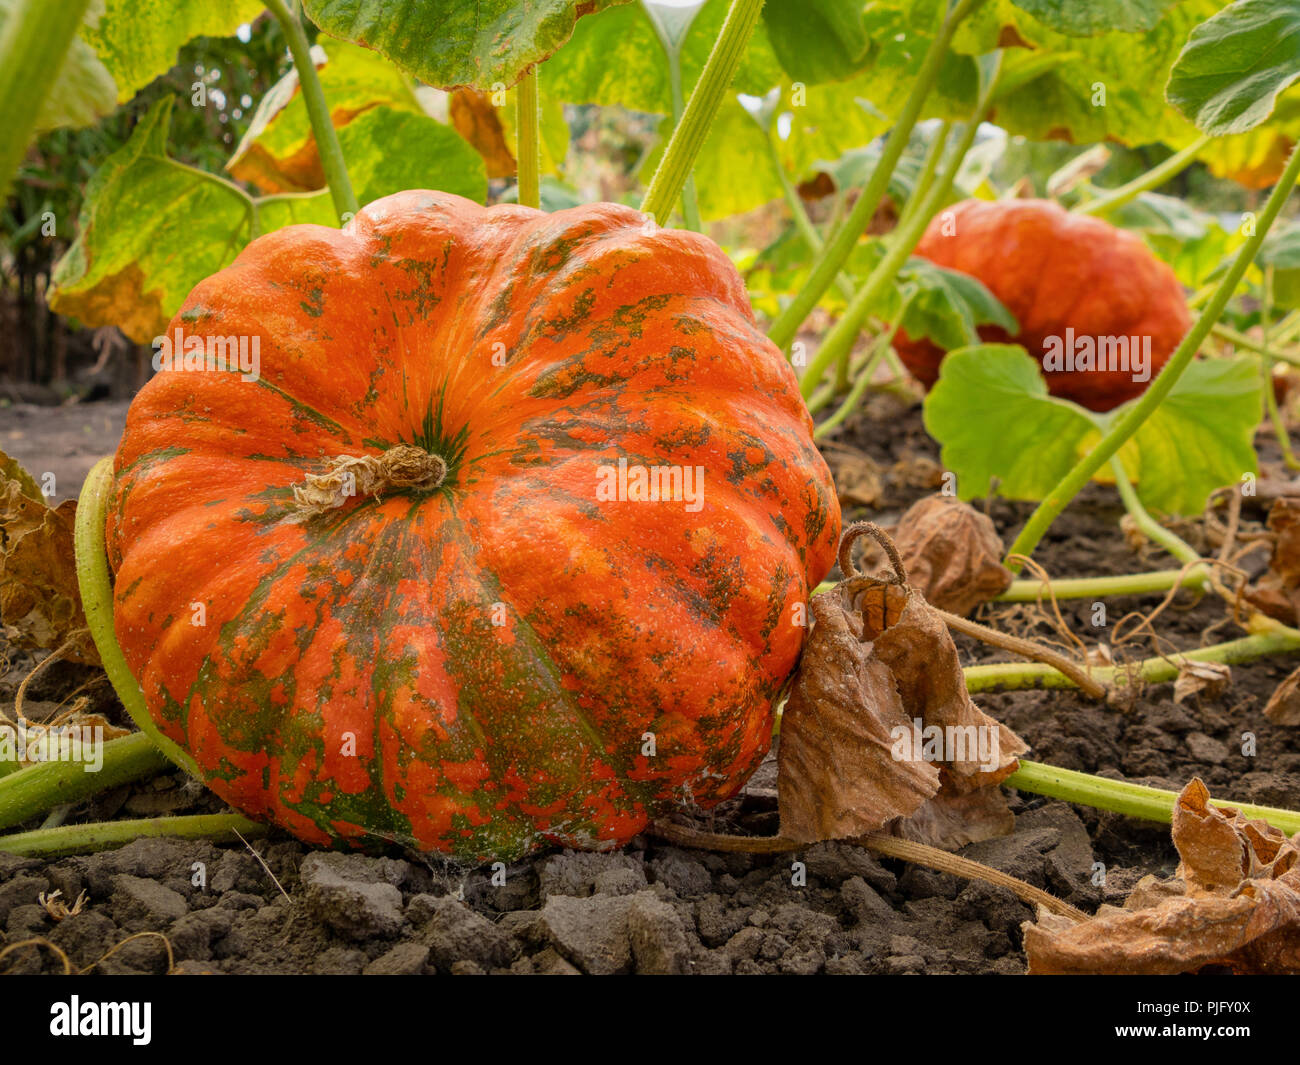 Fresh, ripe, pumpkins growing in field. - Stock Image